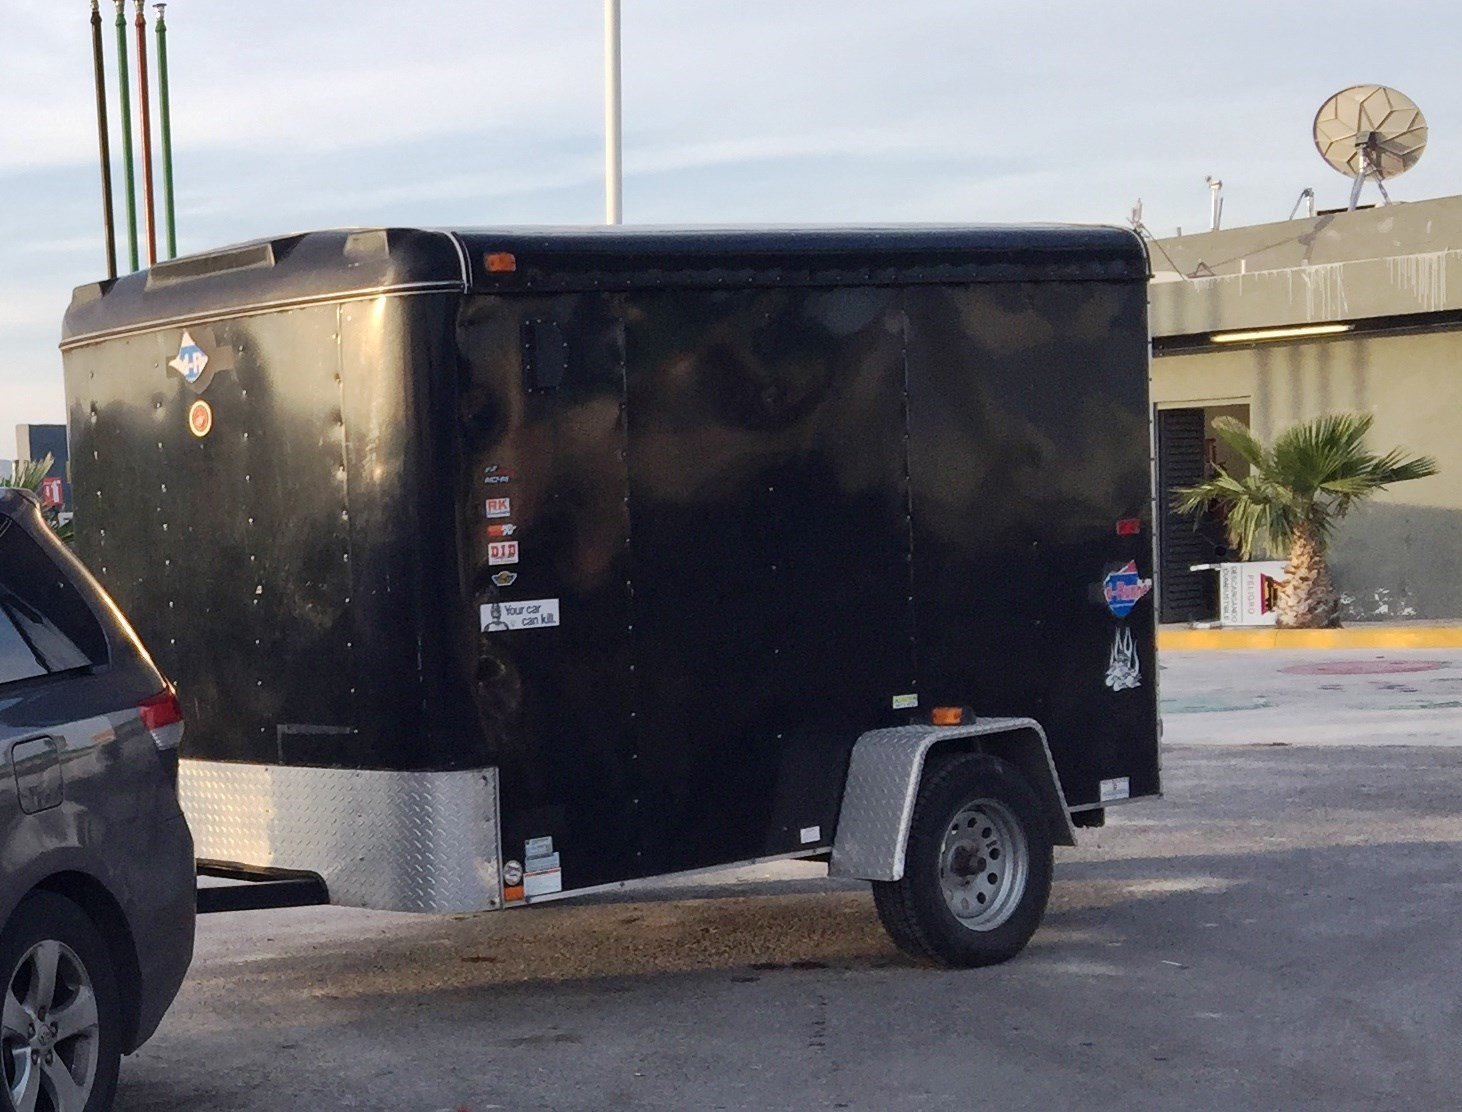 The side of Nunez' black trailer, stolen from his home.